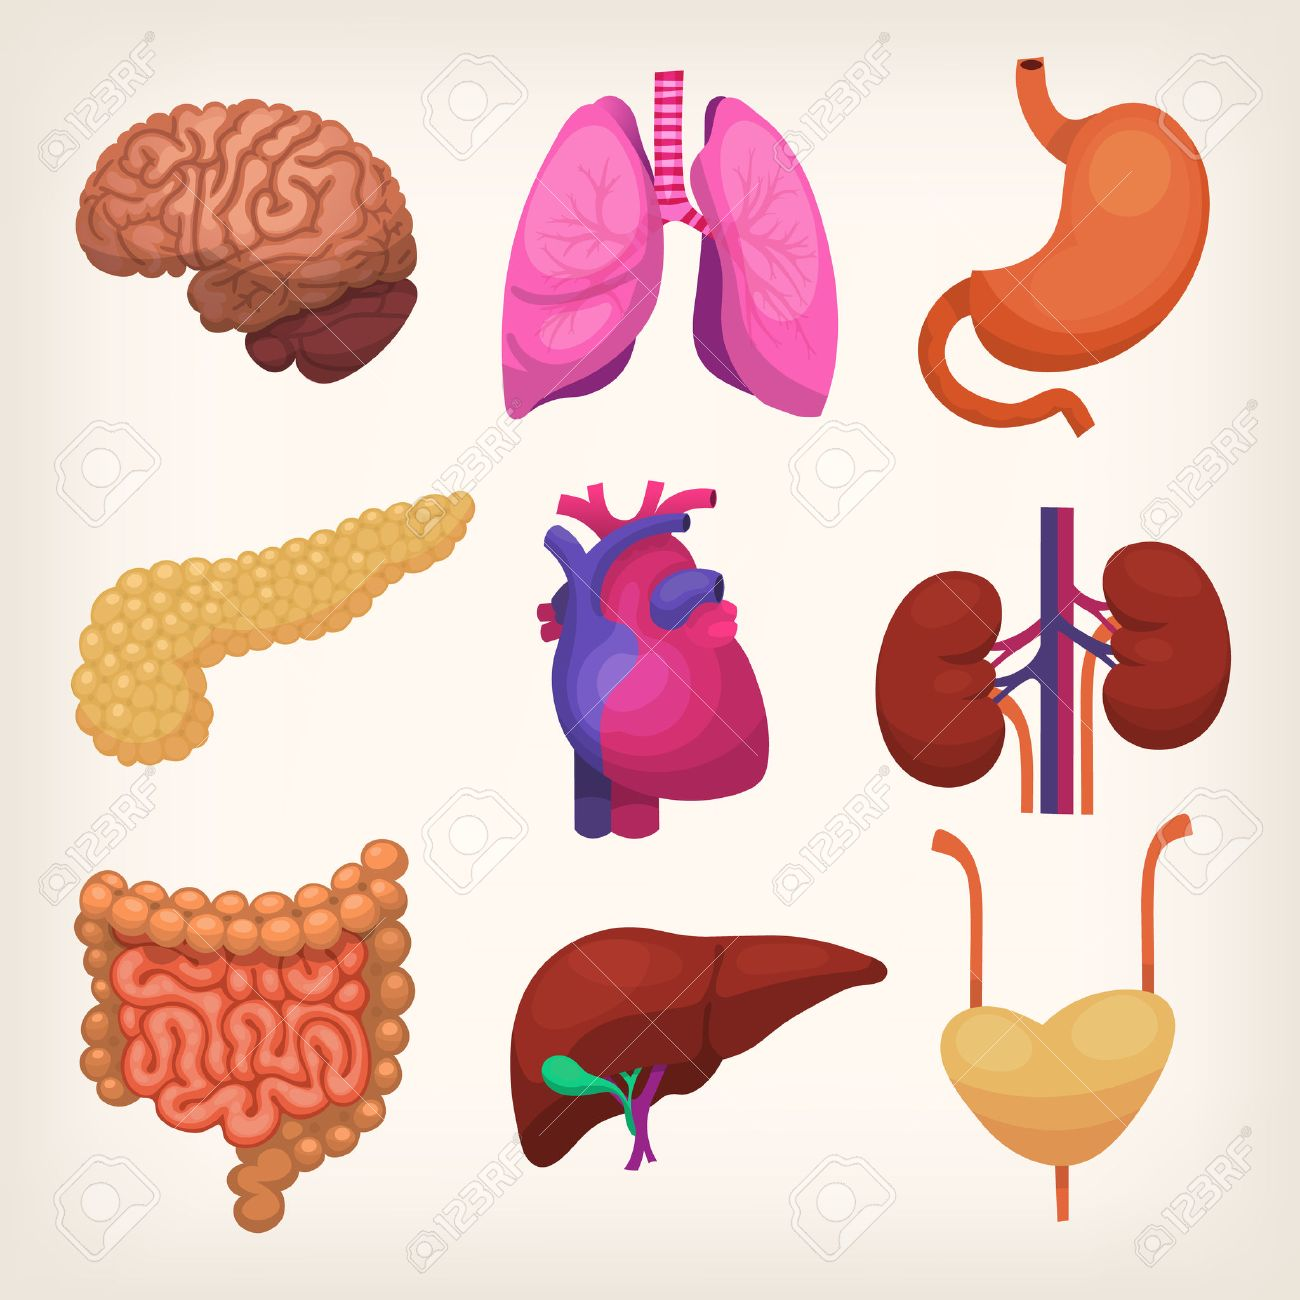 Set of colorful realistic human body organs - 55846865